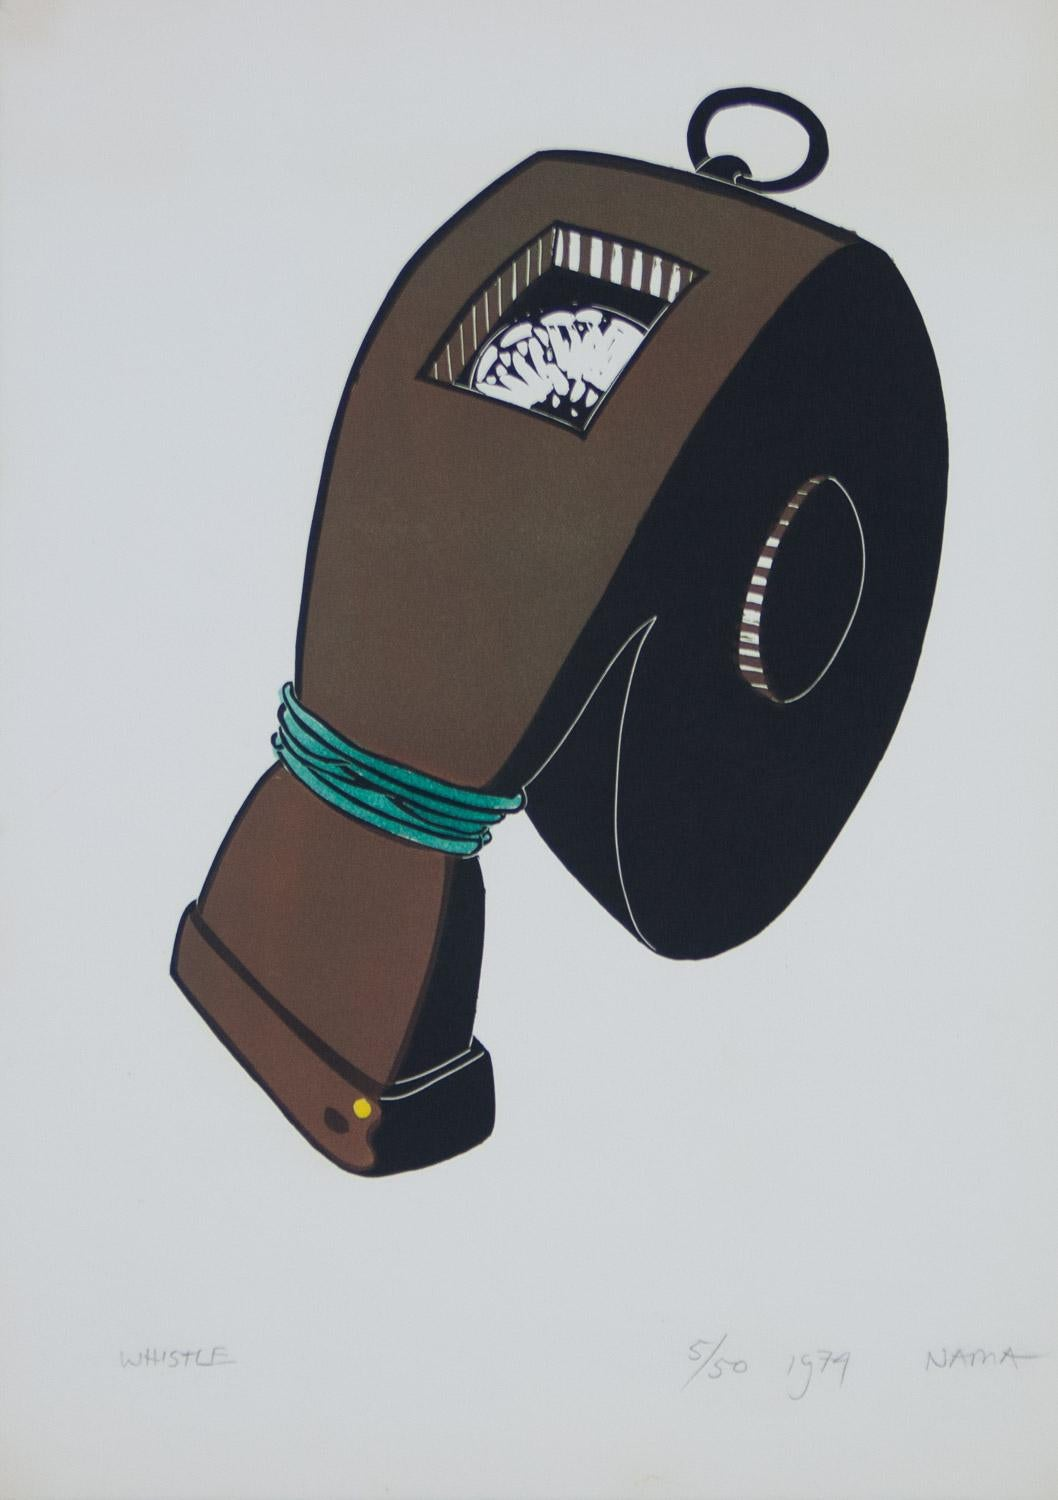 Whistle lino-cut from George Nama suite Tight Rope 1974